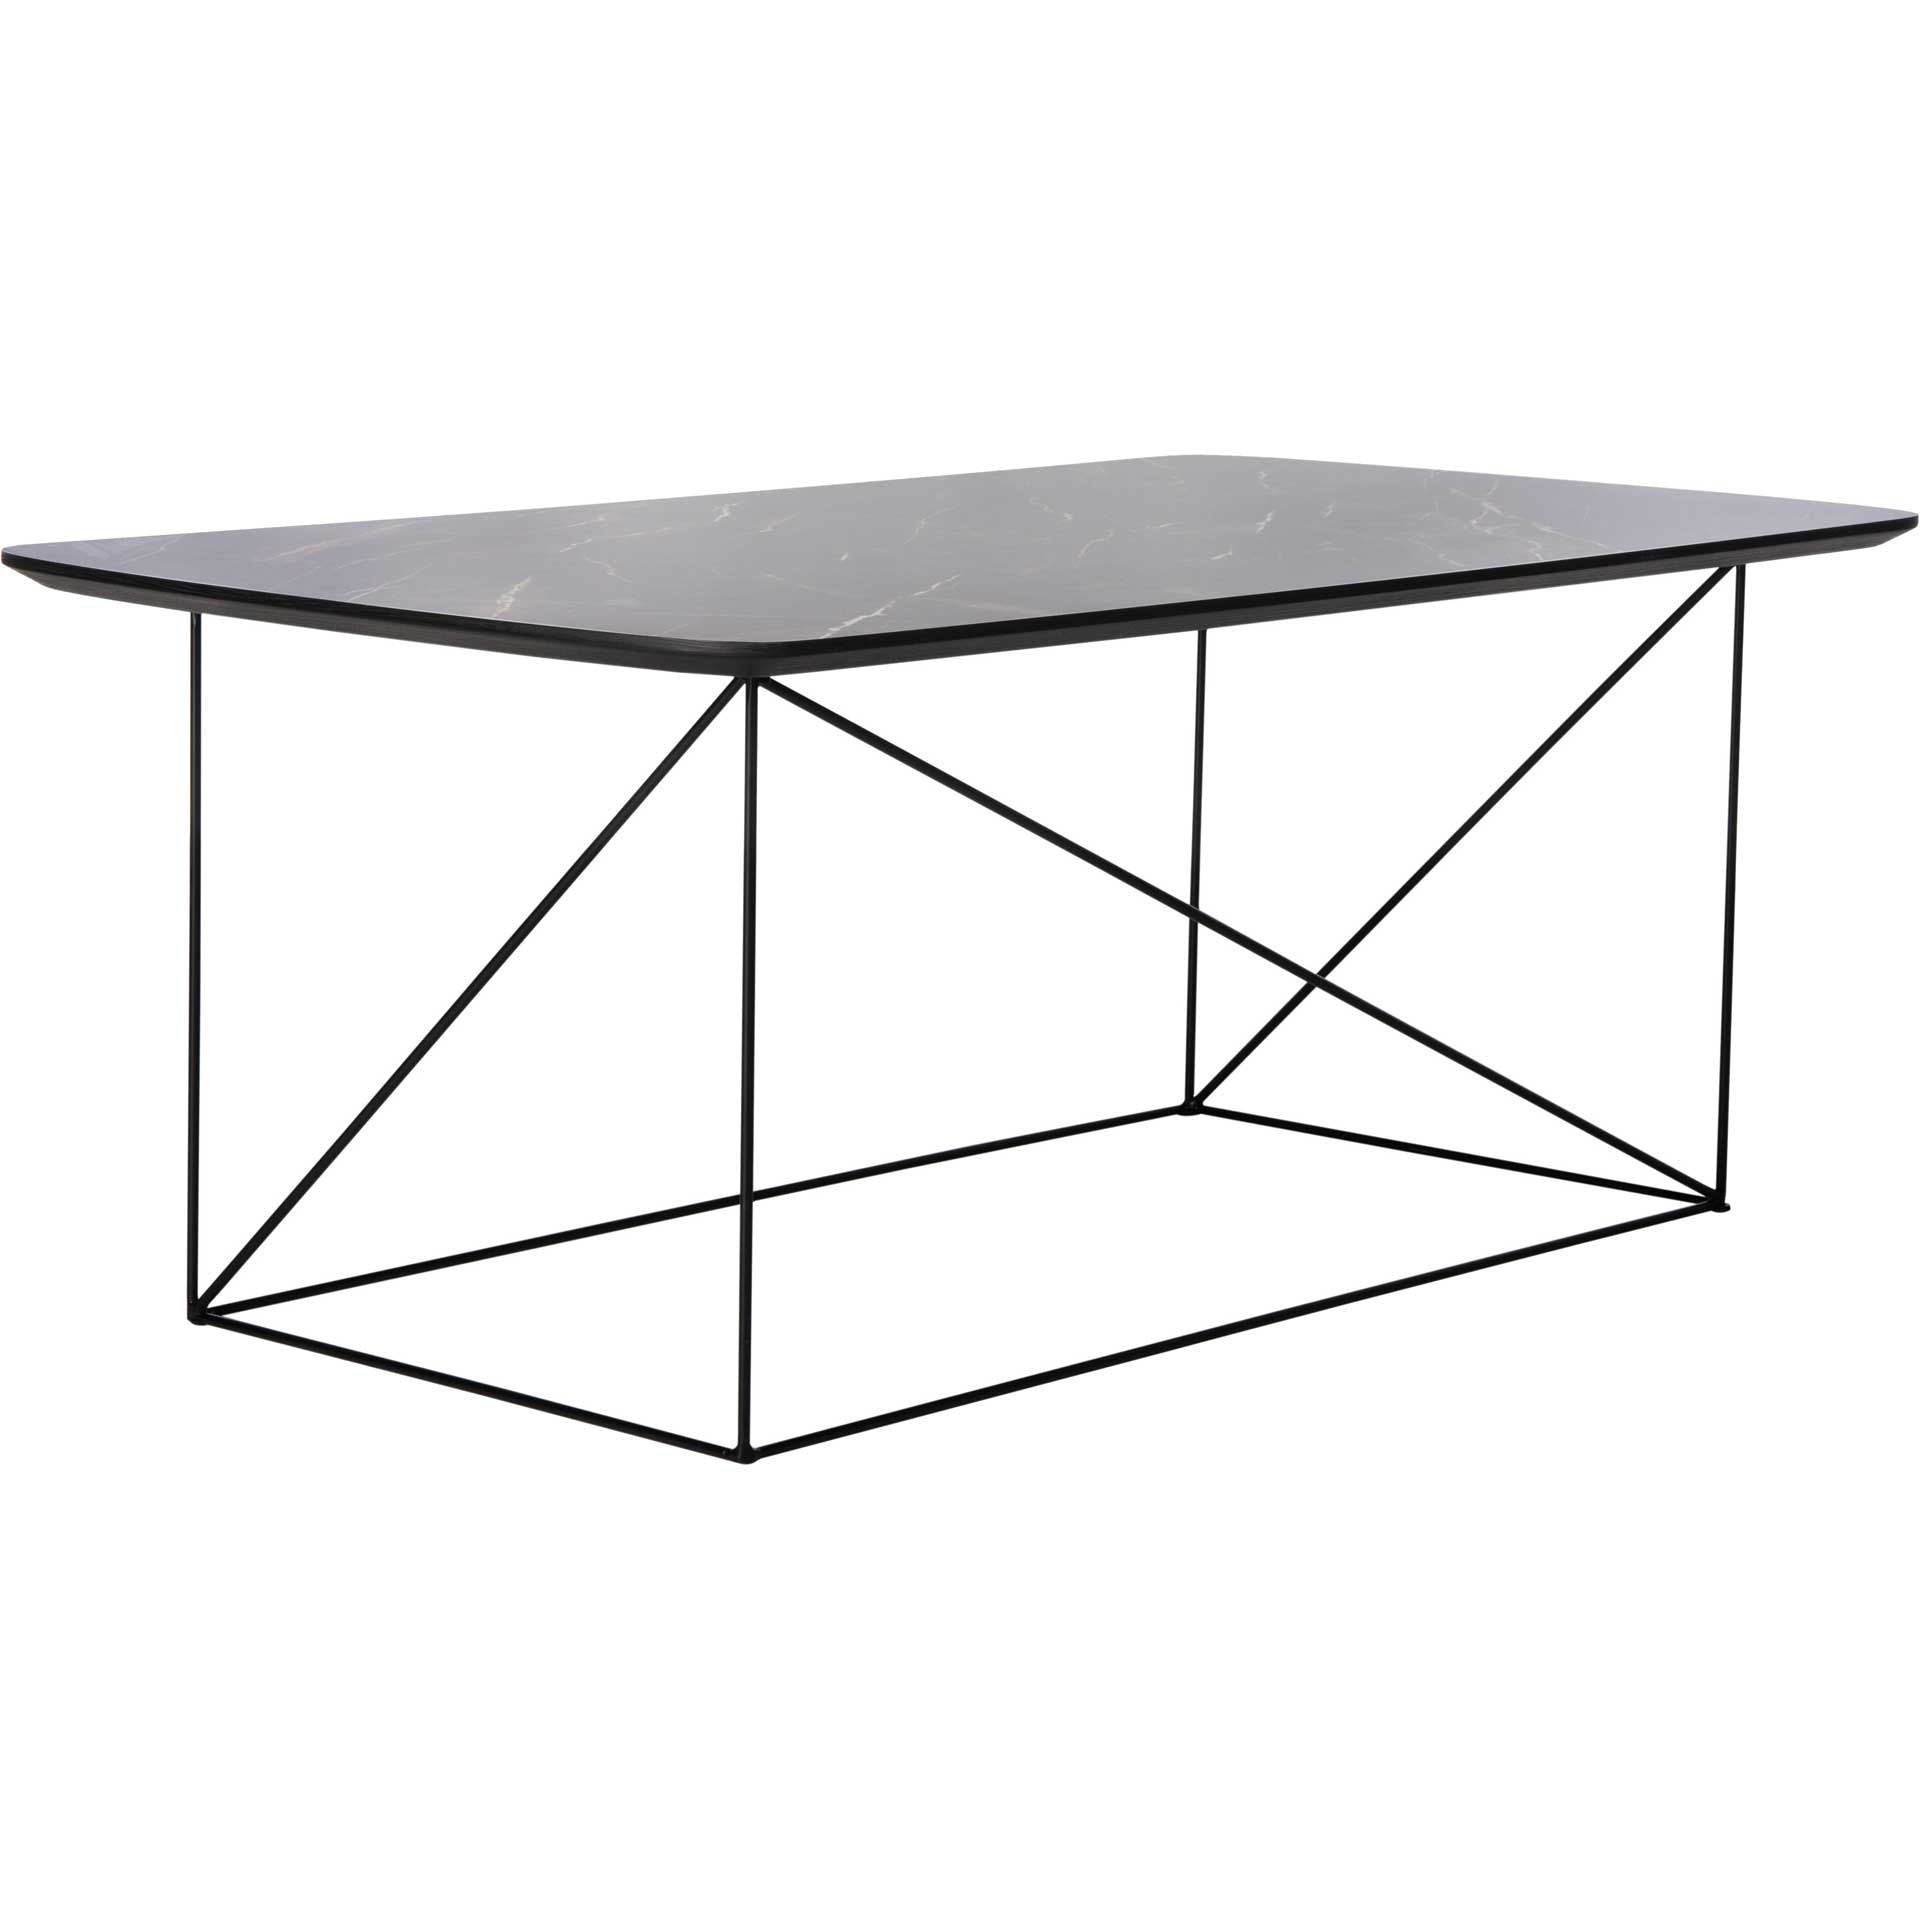 Ryder Coffee Table Dark Gray/Black